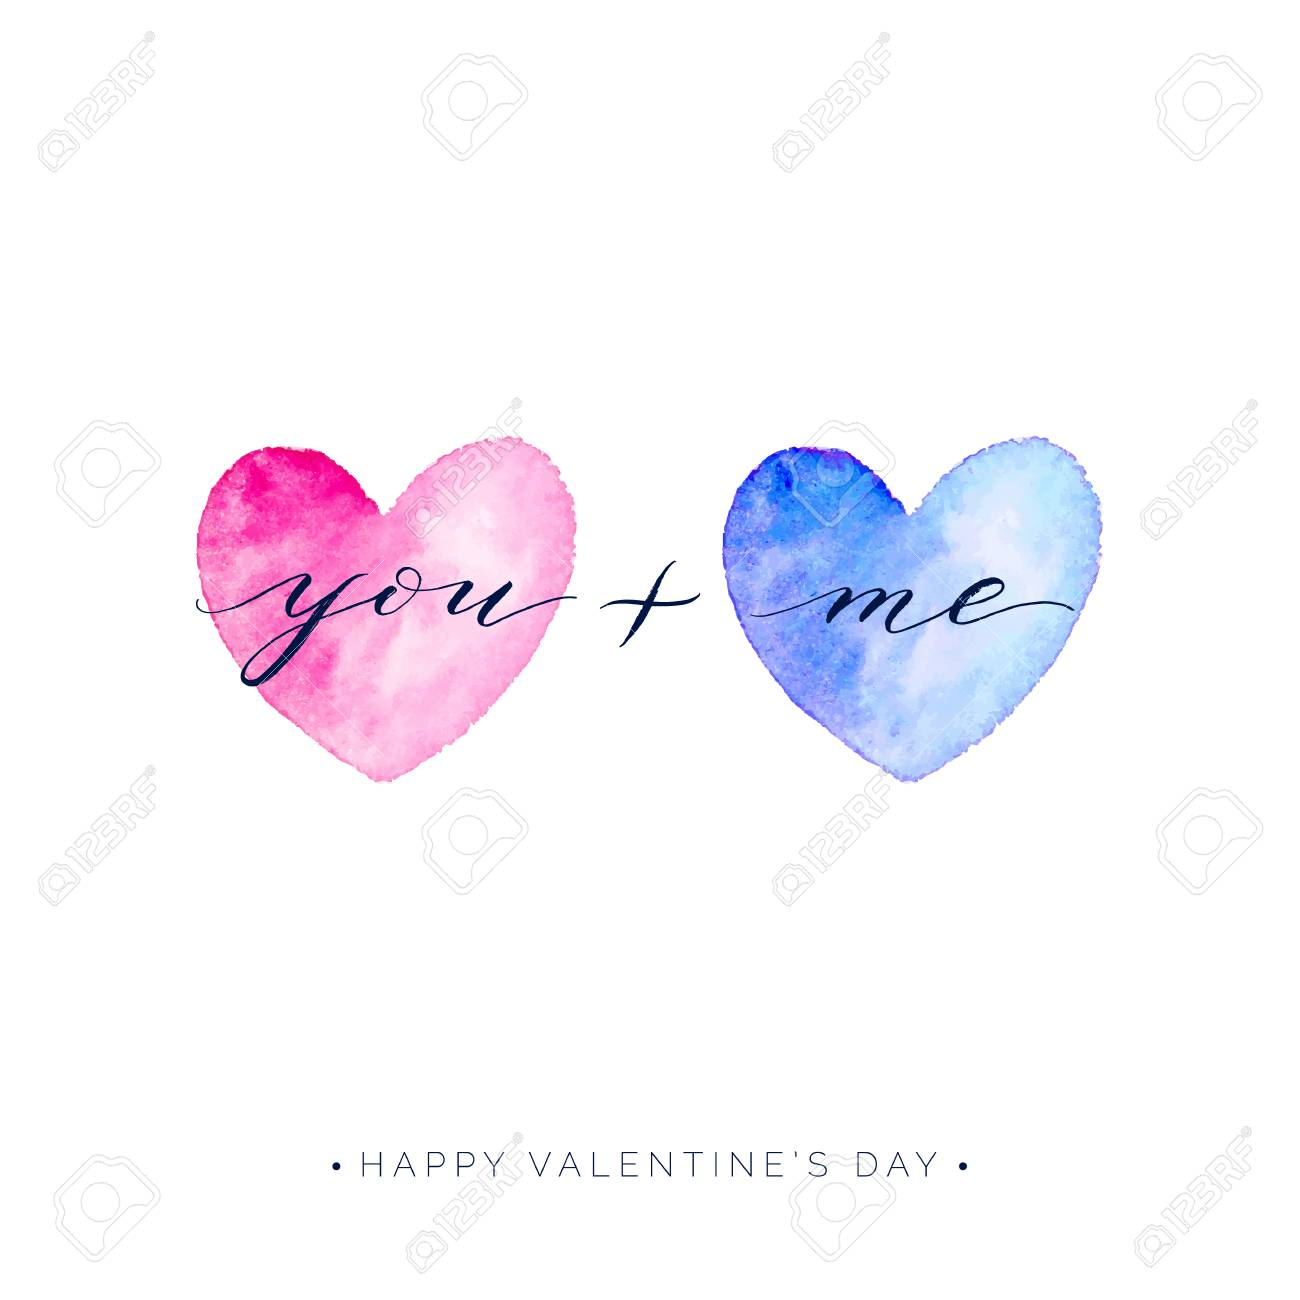 Happy Valentines Day Card You And Me Text On Watercolor Heart